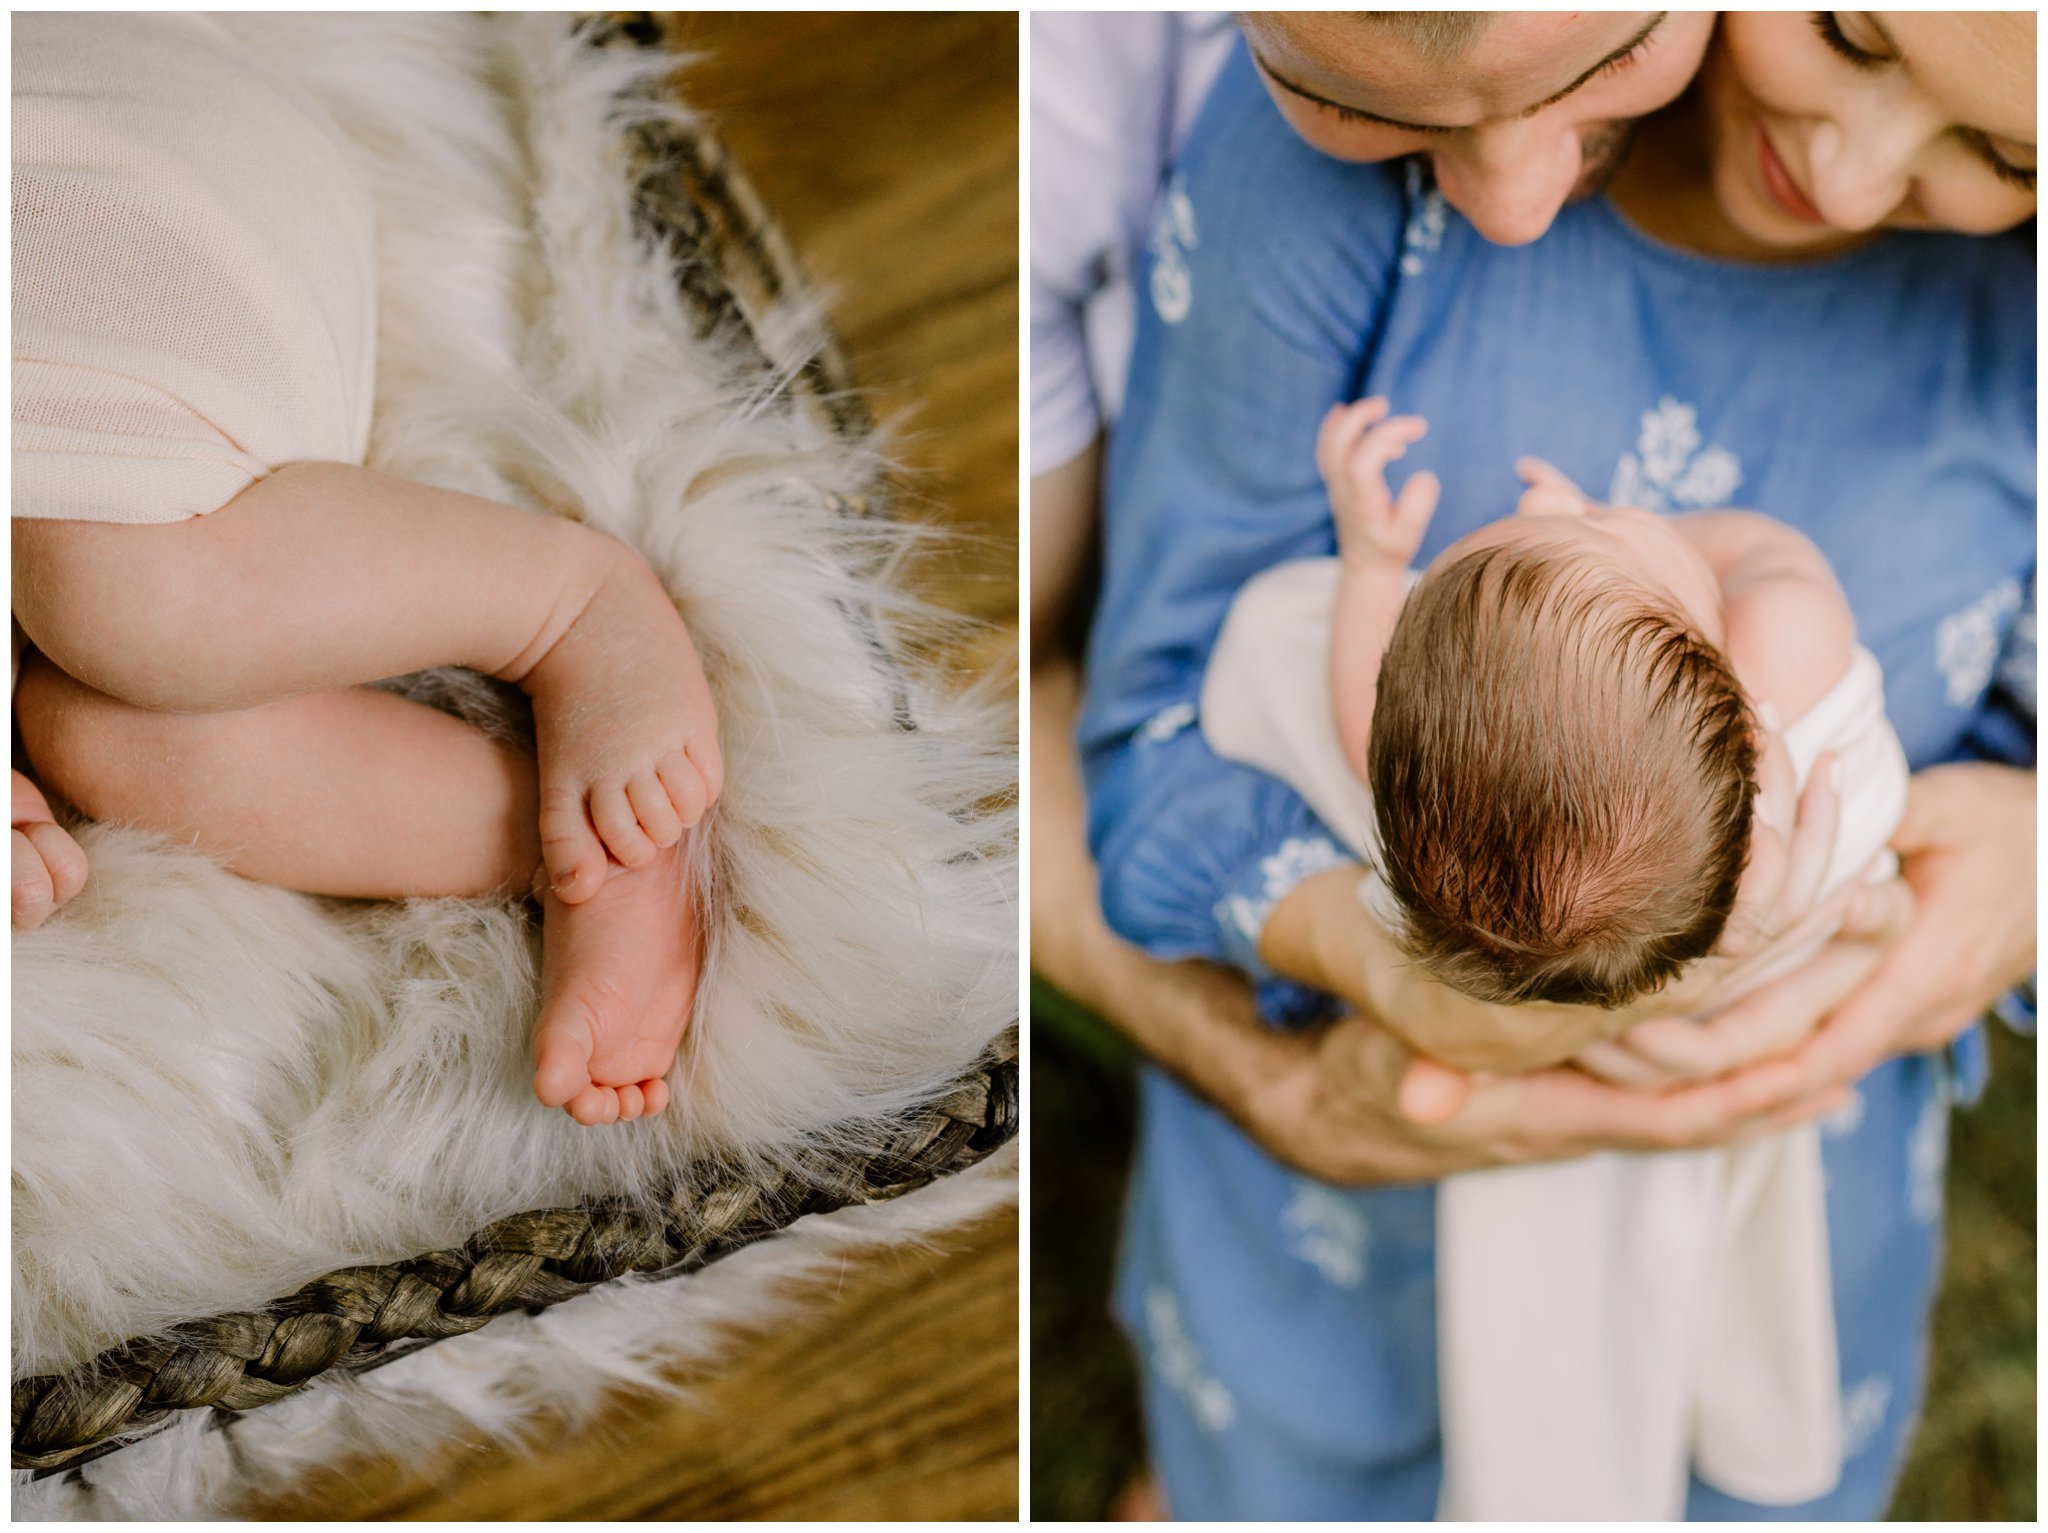 palm beach newborn photographer- south florida newborn photographers- jupiter family photographer- palm beach photographers- stuart florida photographers- palm beach- newborn photos_0005.jpg